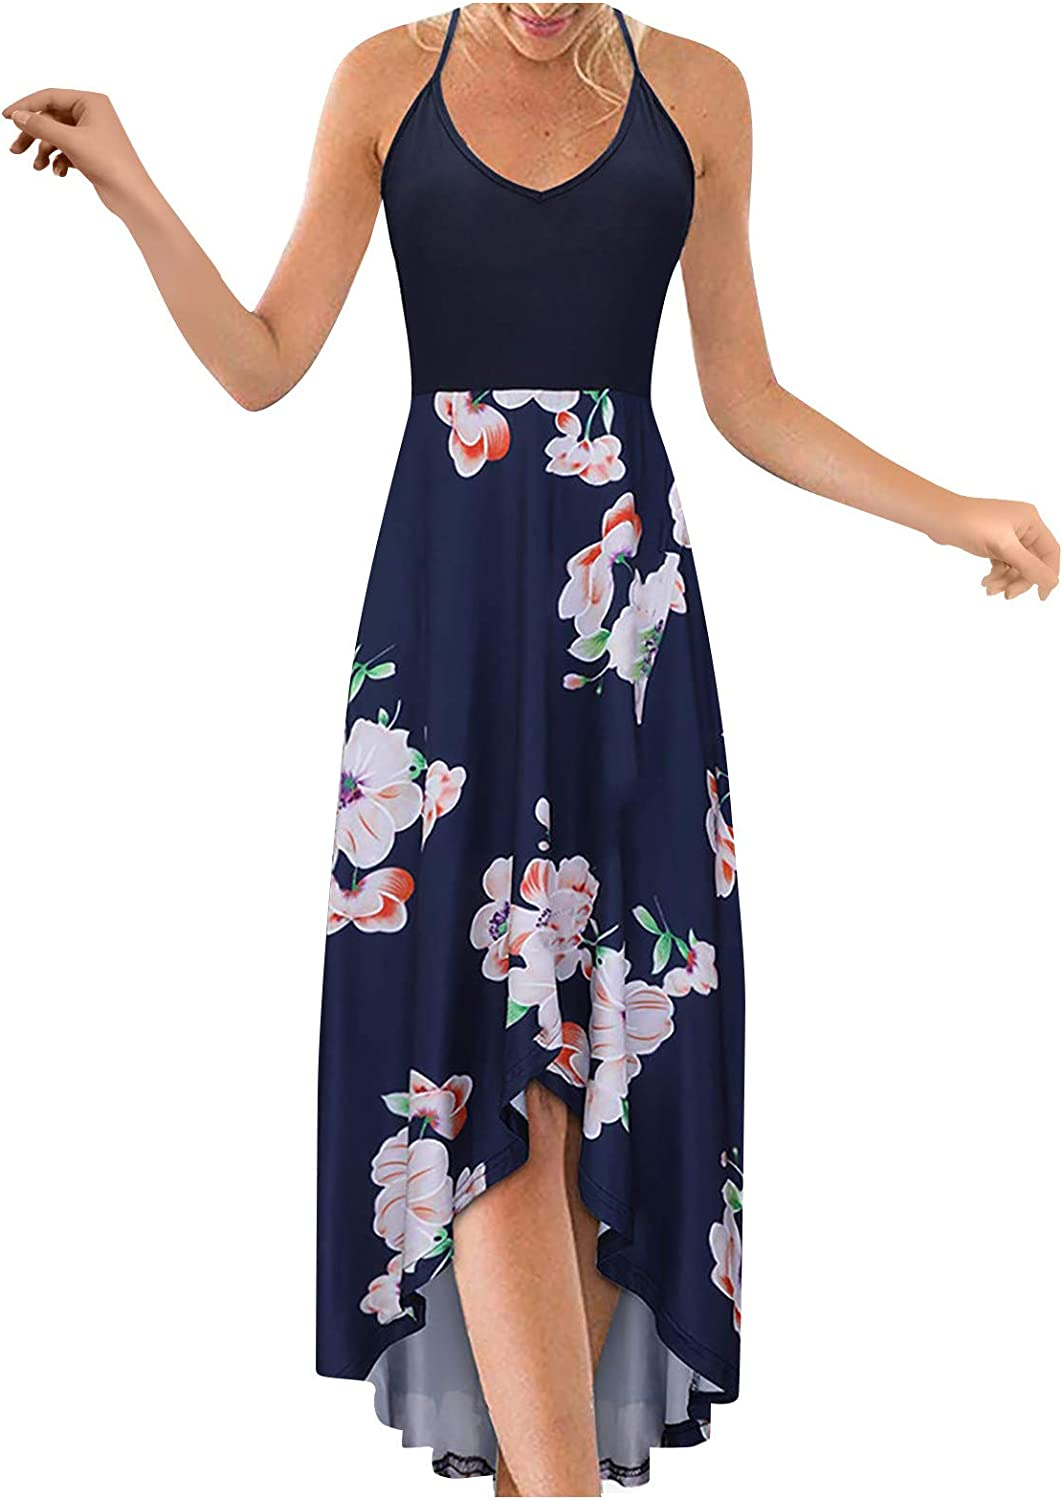 Maxi Dresses For Women,Women's Casual Summer V Neck Sexy Beach Party Maxi Dresses Vintage Long Dress